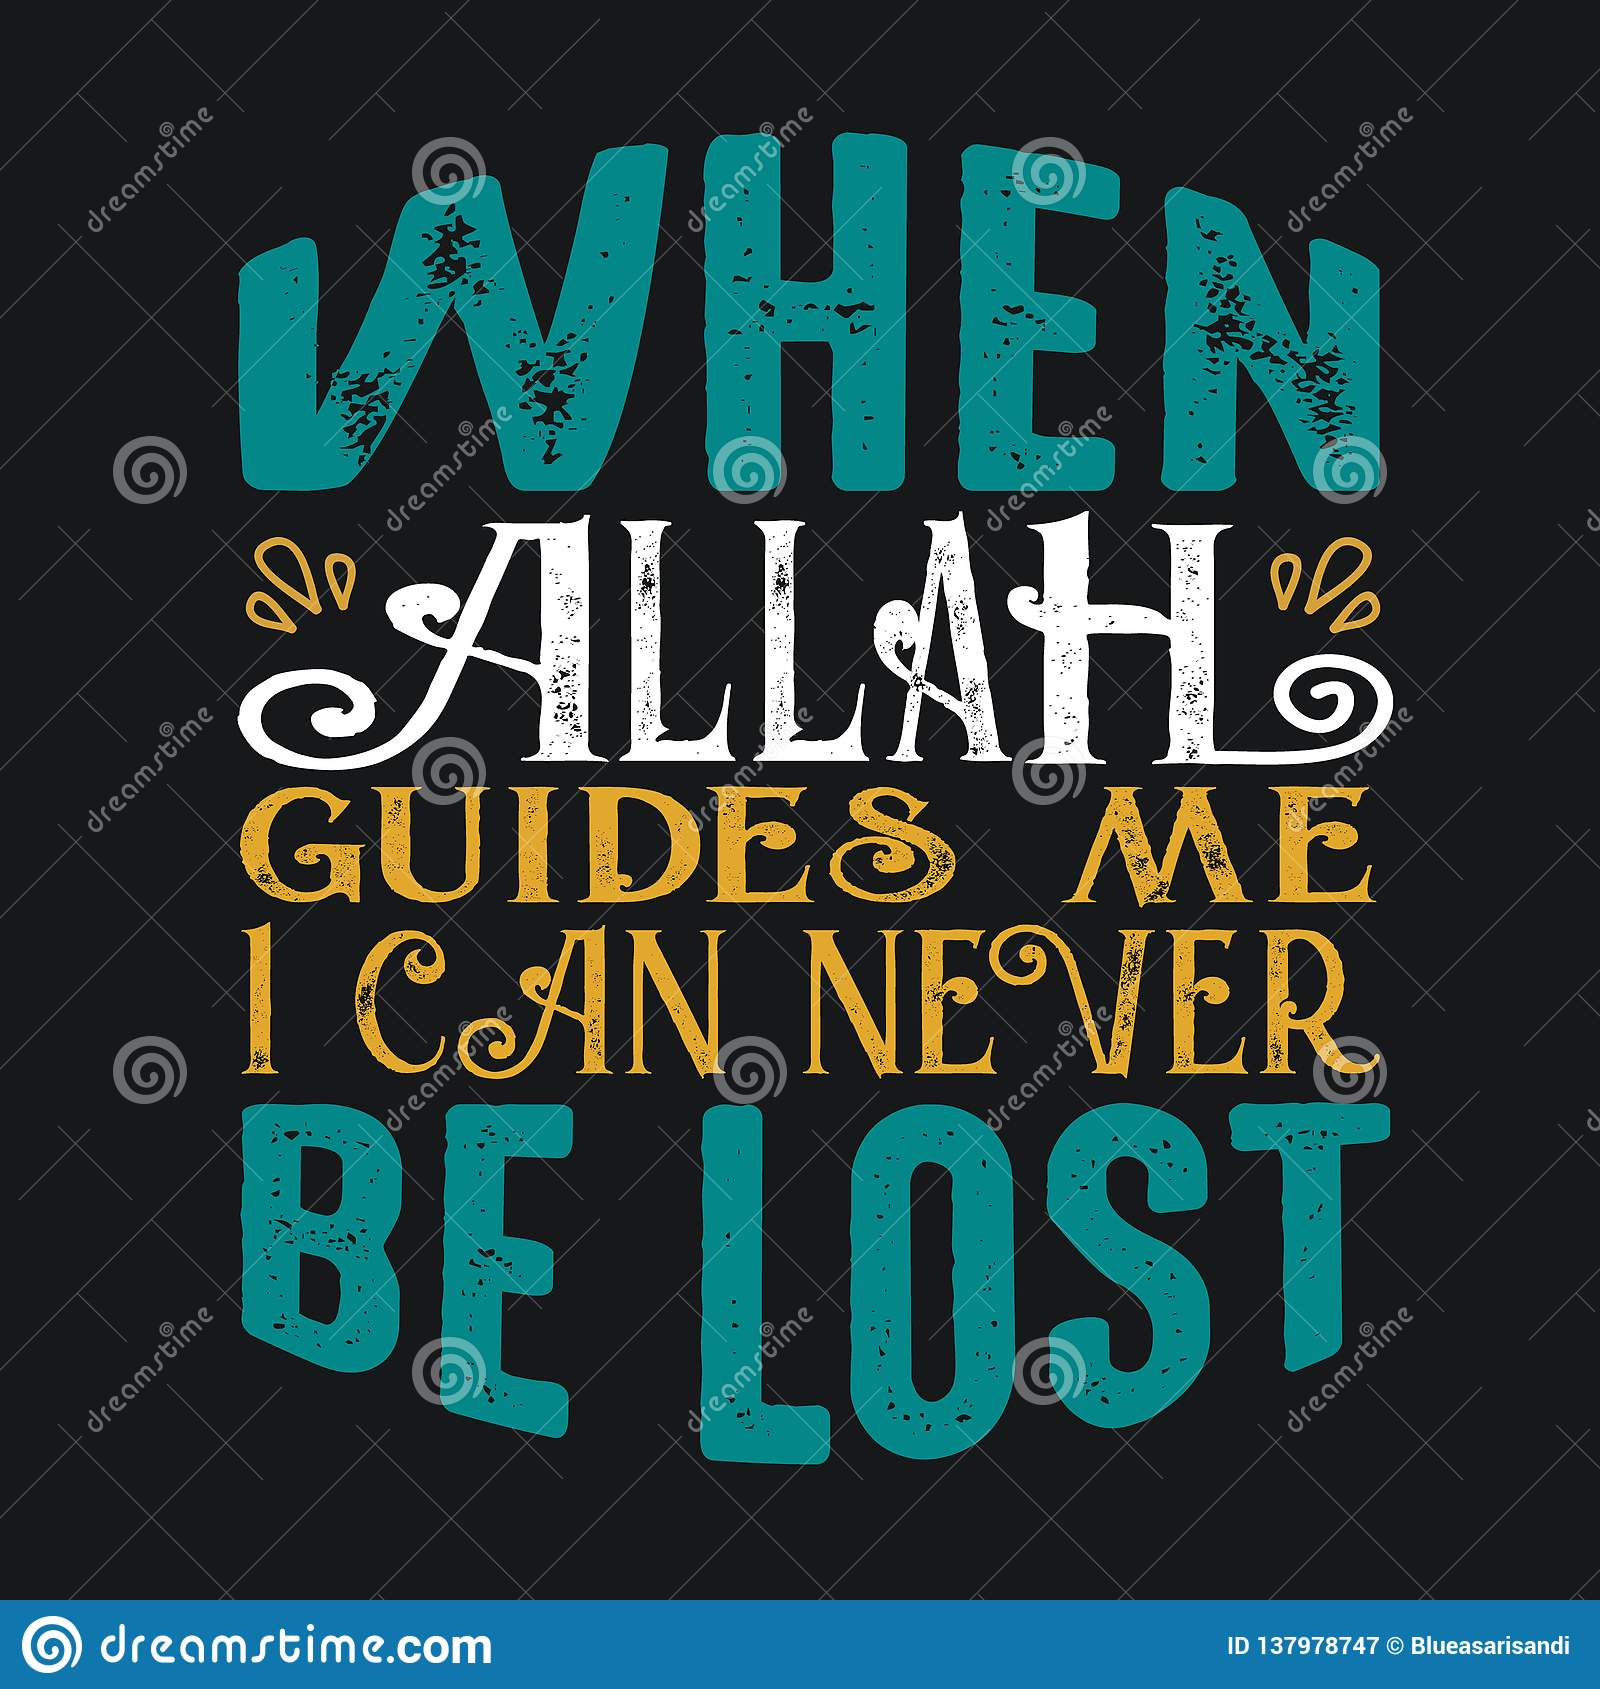 Muslim Quote And Saying Good For Print Stock Illustration